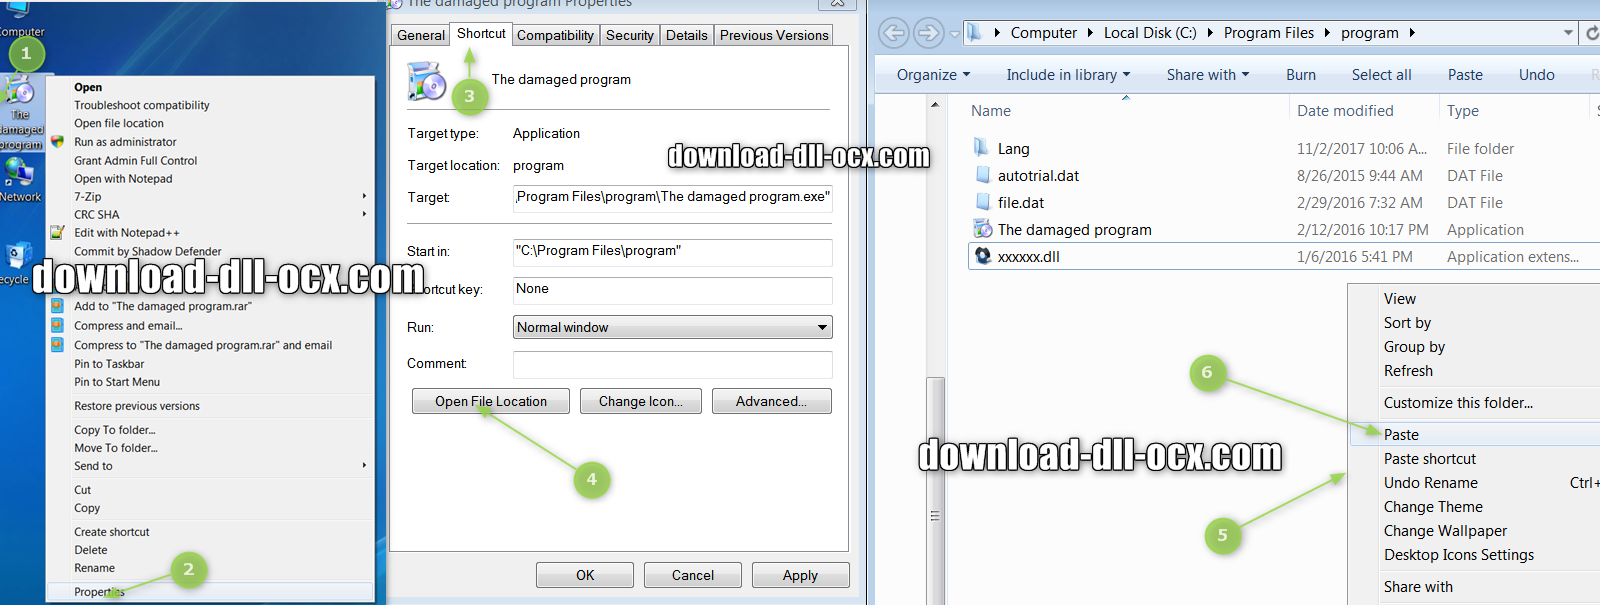 Extract the compressed file Adctrlsres.dll in zip format